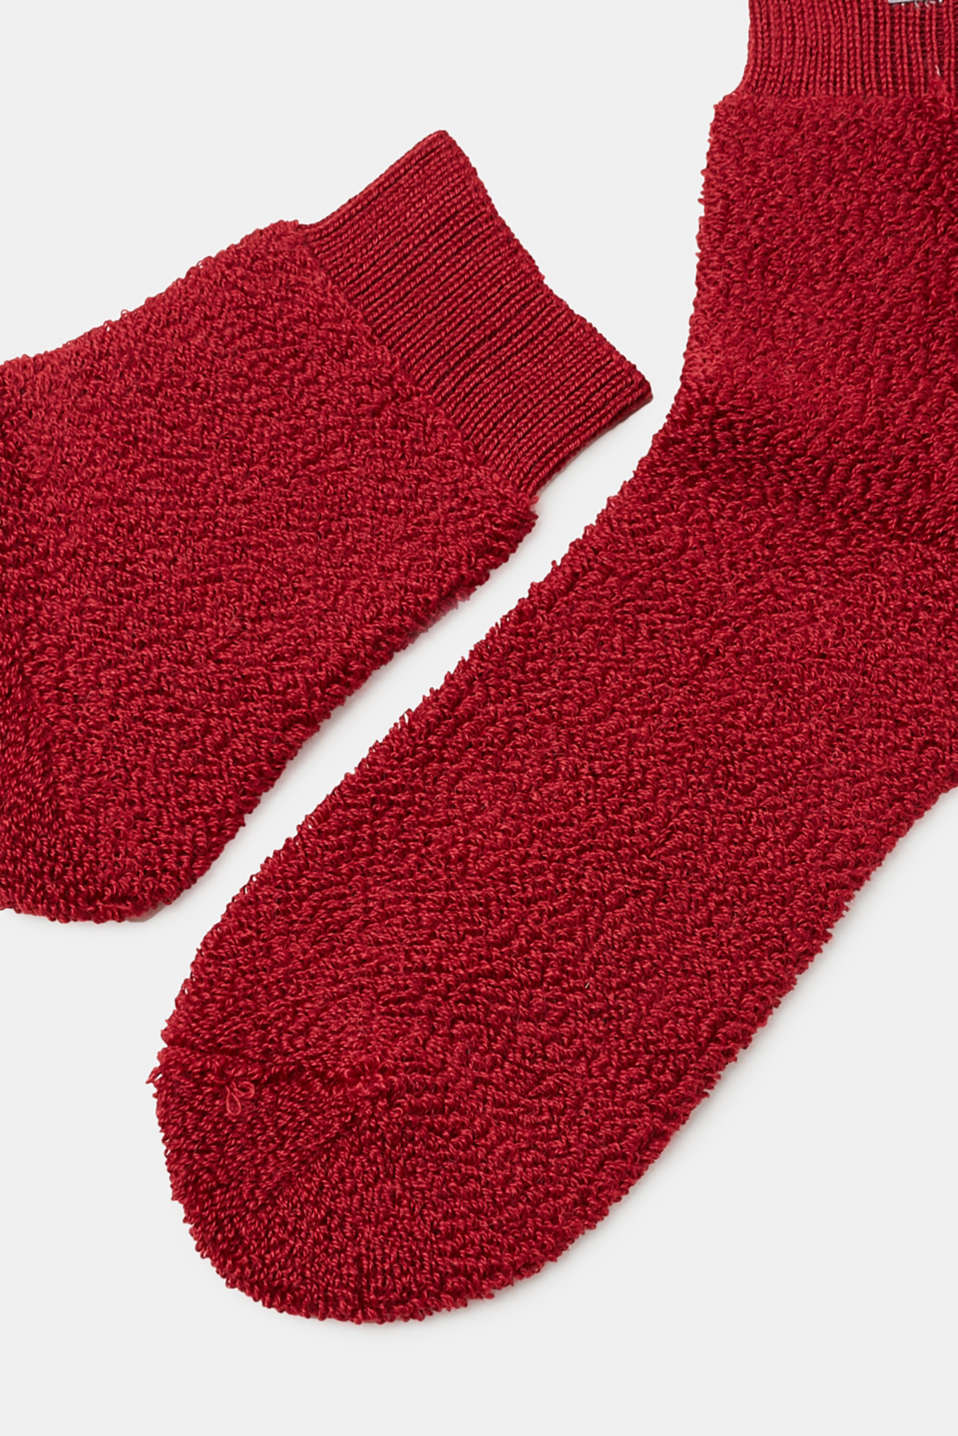 With wool: terrycloth socks with a soft texture, RUBY, detail image number 1